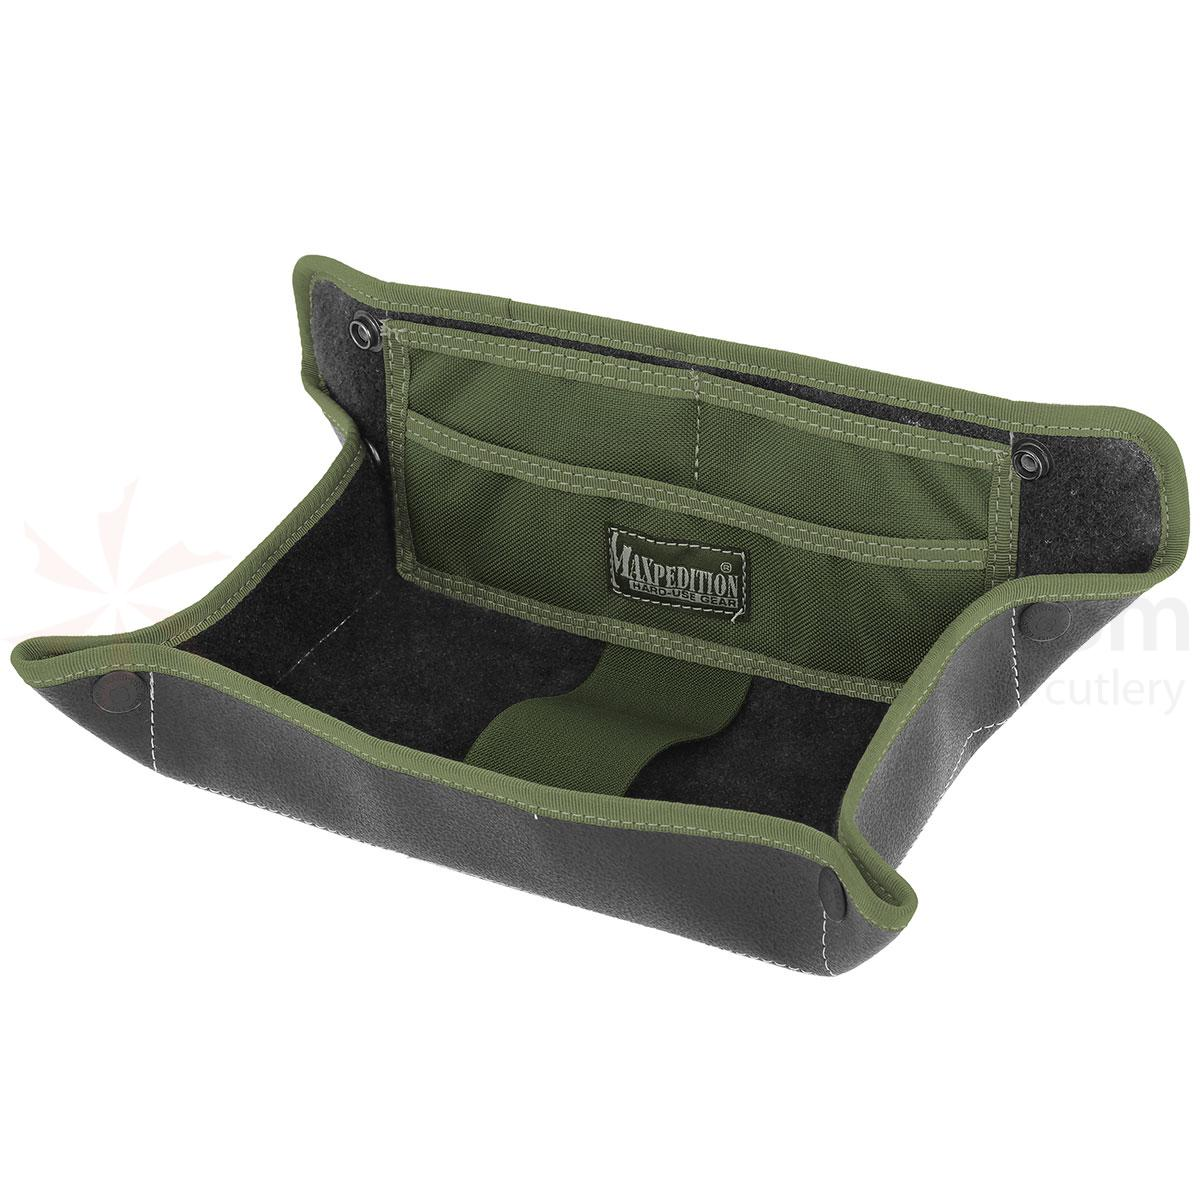 Maxpedition 1805G Tactical Travel Valet Tray, OD Green